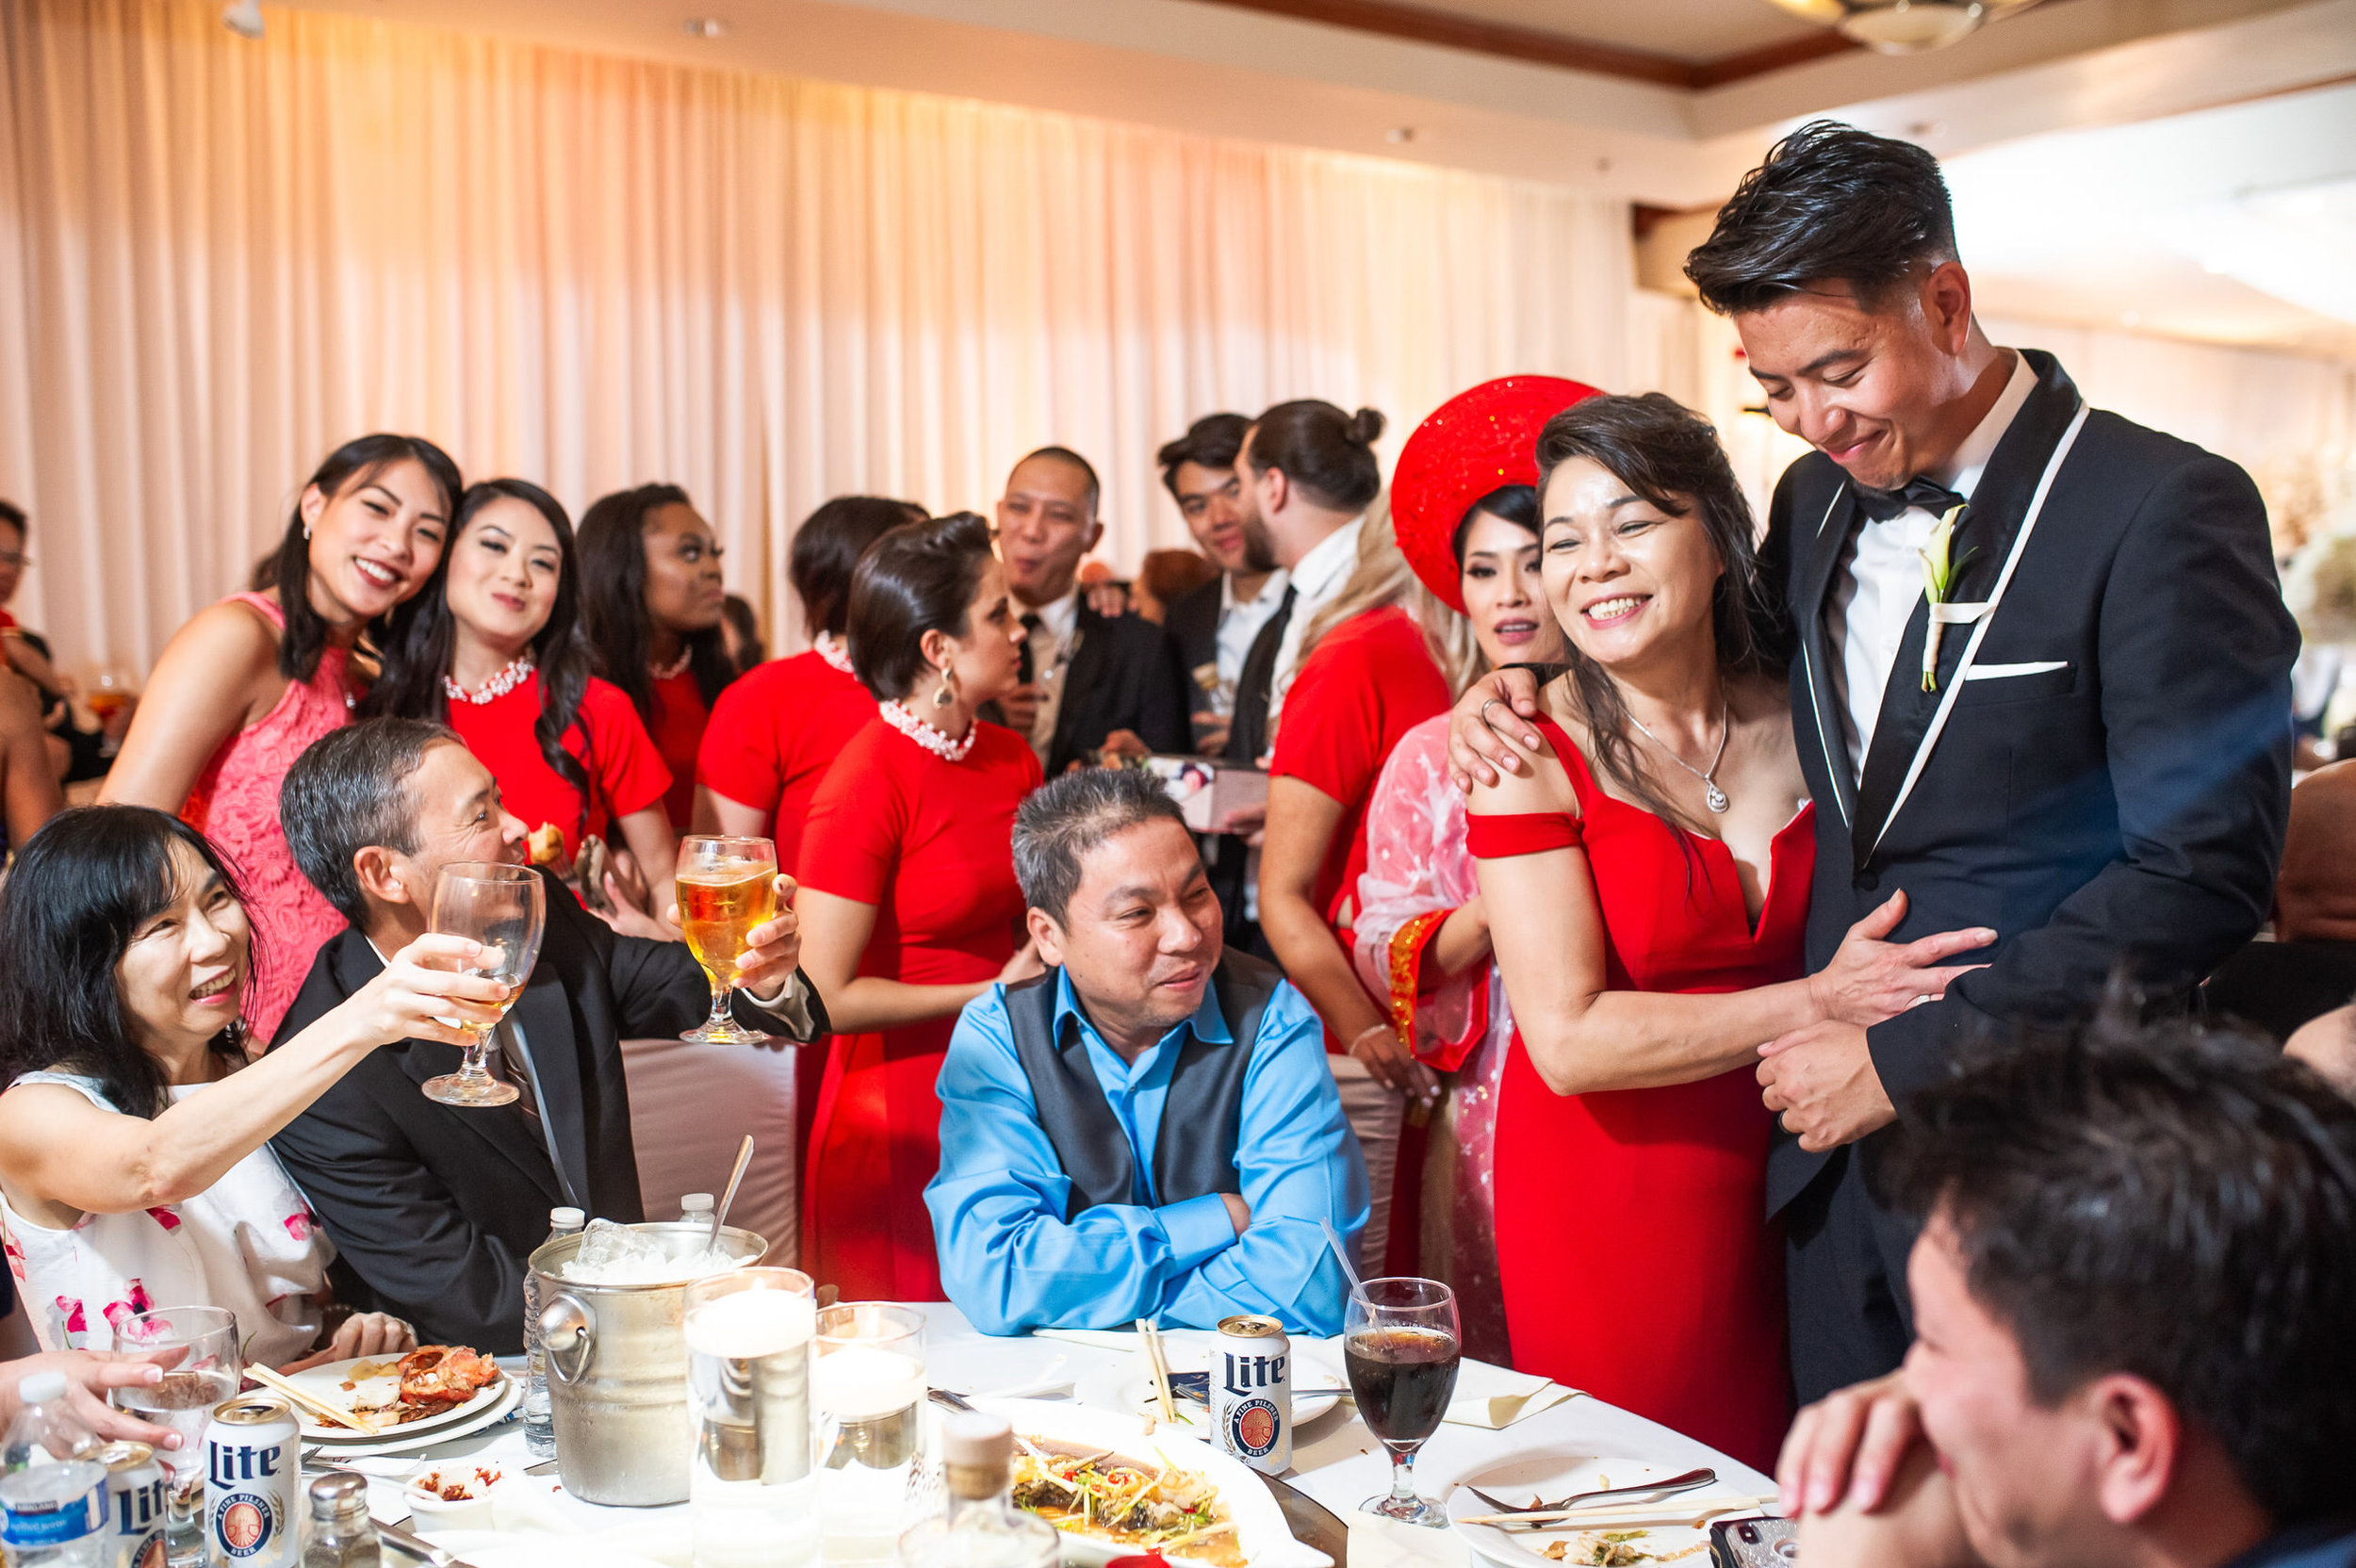 Dream_Wedding_Thanh_Thanh-21488.jpg